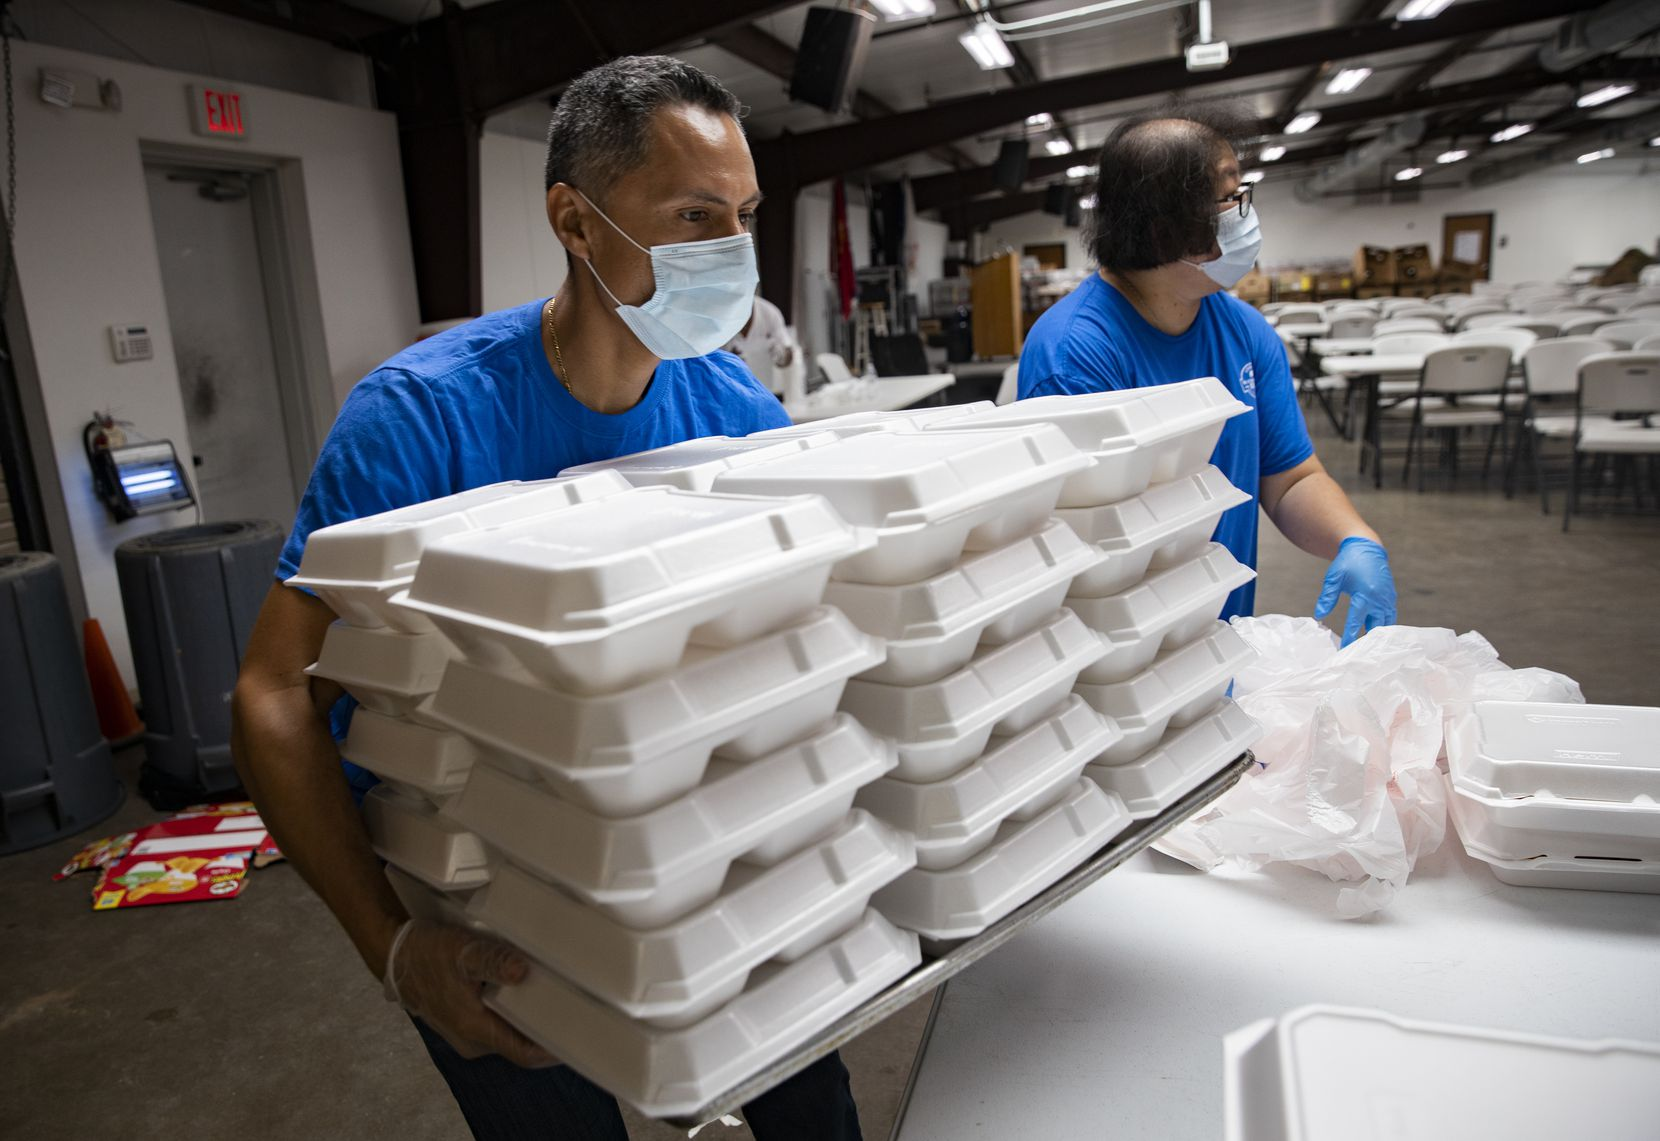 Rham Sandoval of Stonebriar Community Church in Frisco helped prepare meals at Cornerstone Community Development Corp. in Dallas on Saturday.